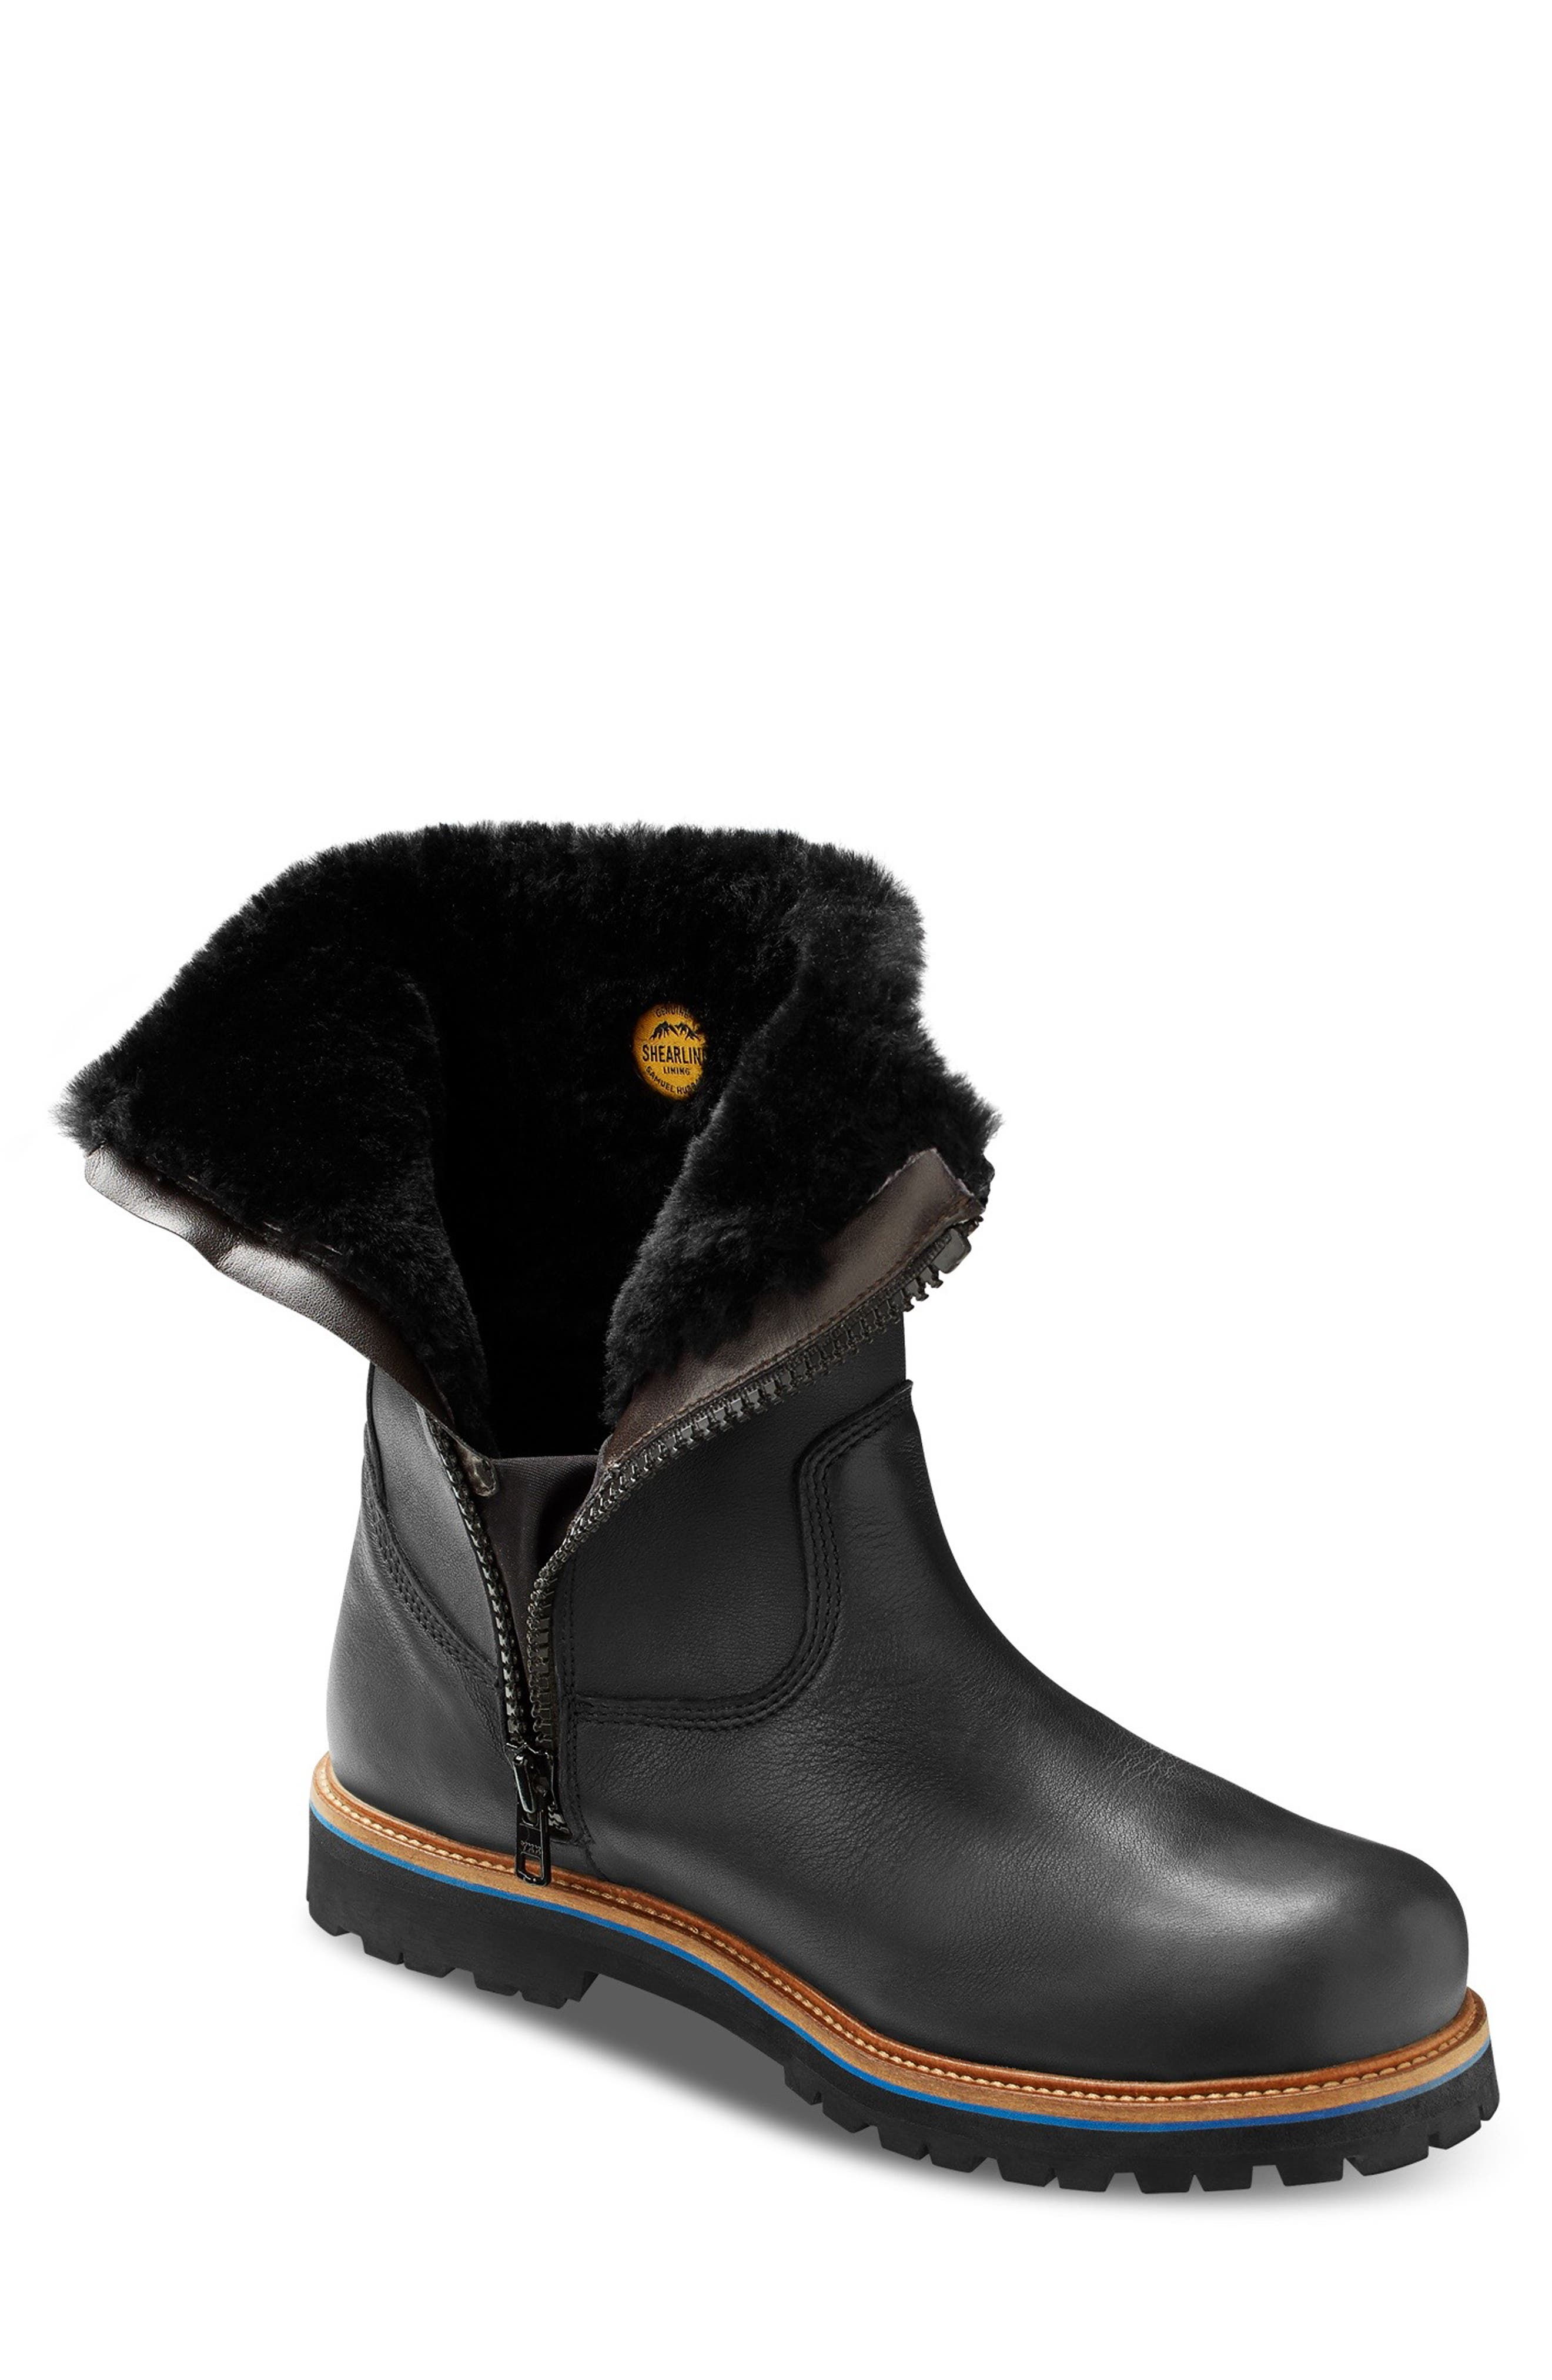 Snow Lodge Waterproof Gore-Tex<sup>®</sup> Genuine Shearling Lined Boot,                             Alternate thumbnail 8, color,                             BLACK LEATHER